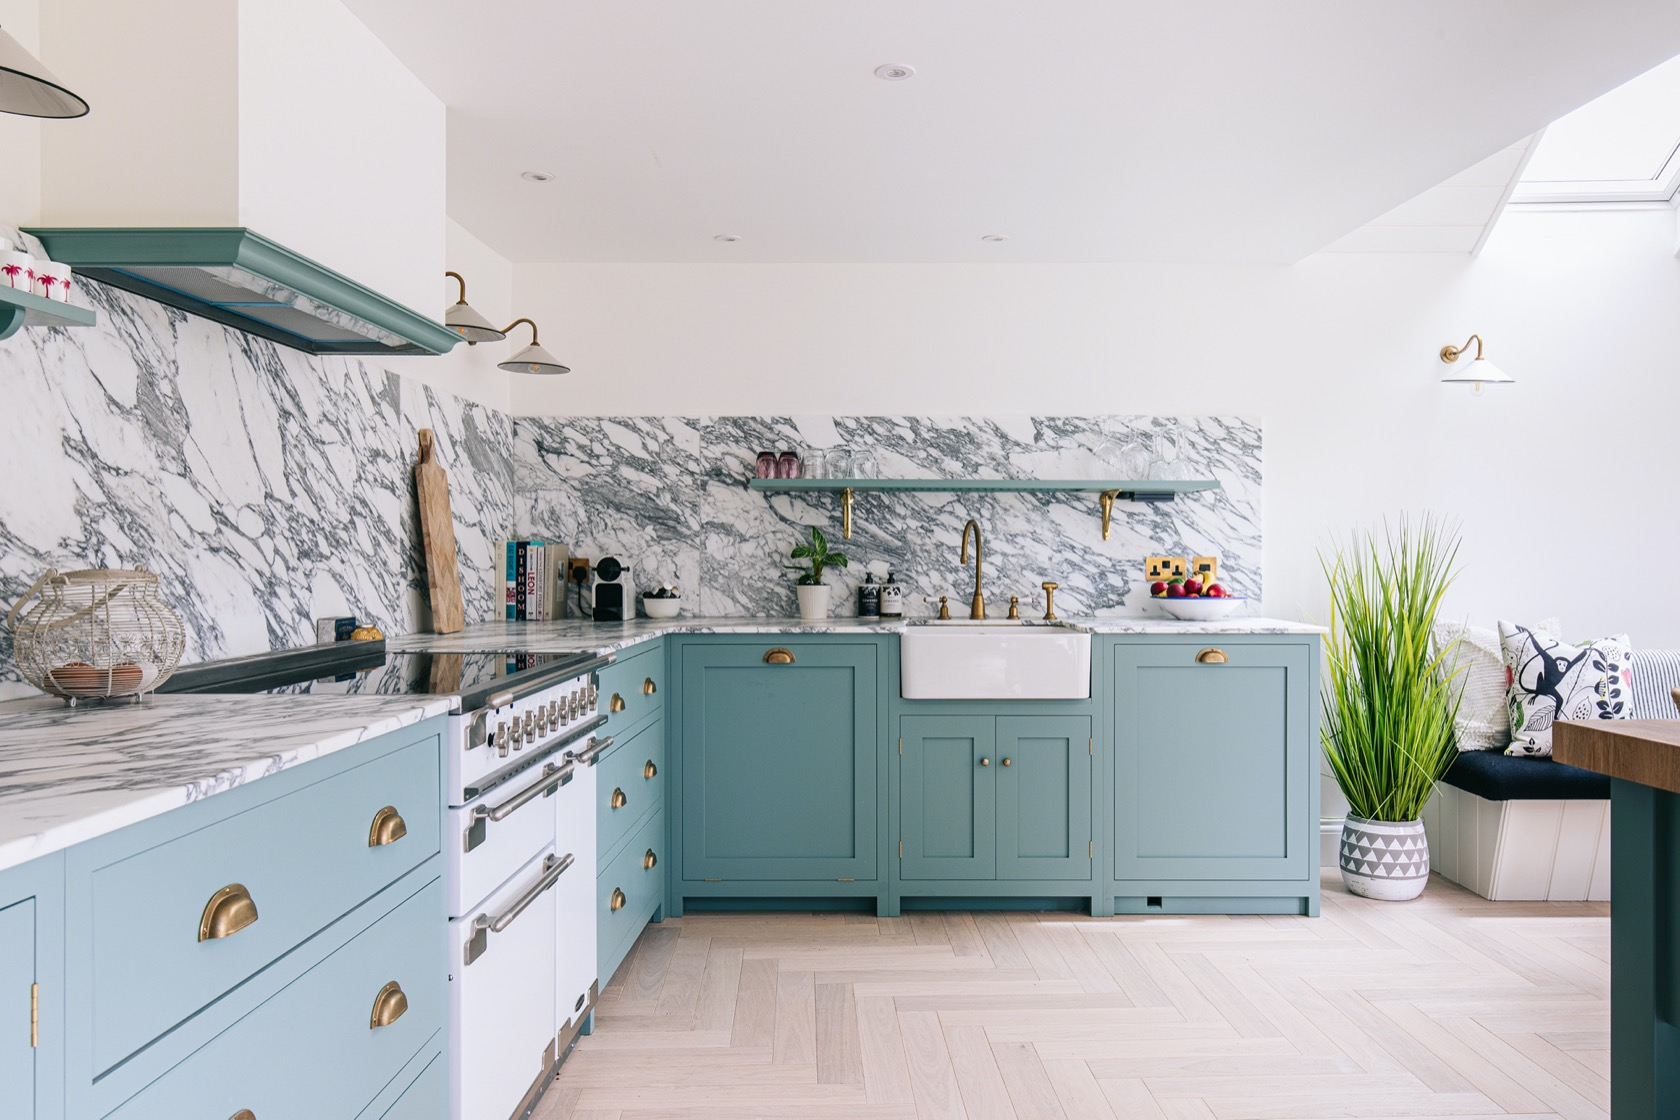 DeVOL kitchen designed by Laura Butler-Madden for her Cotswold Cottage